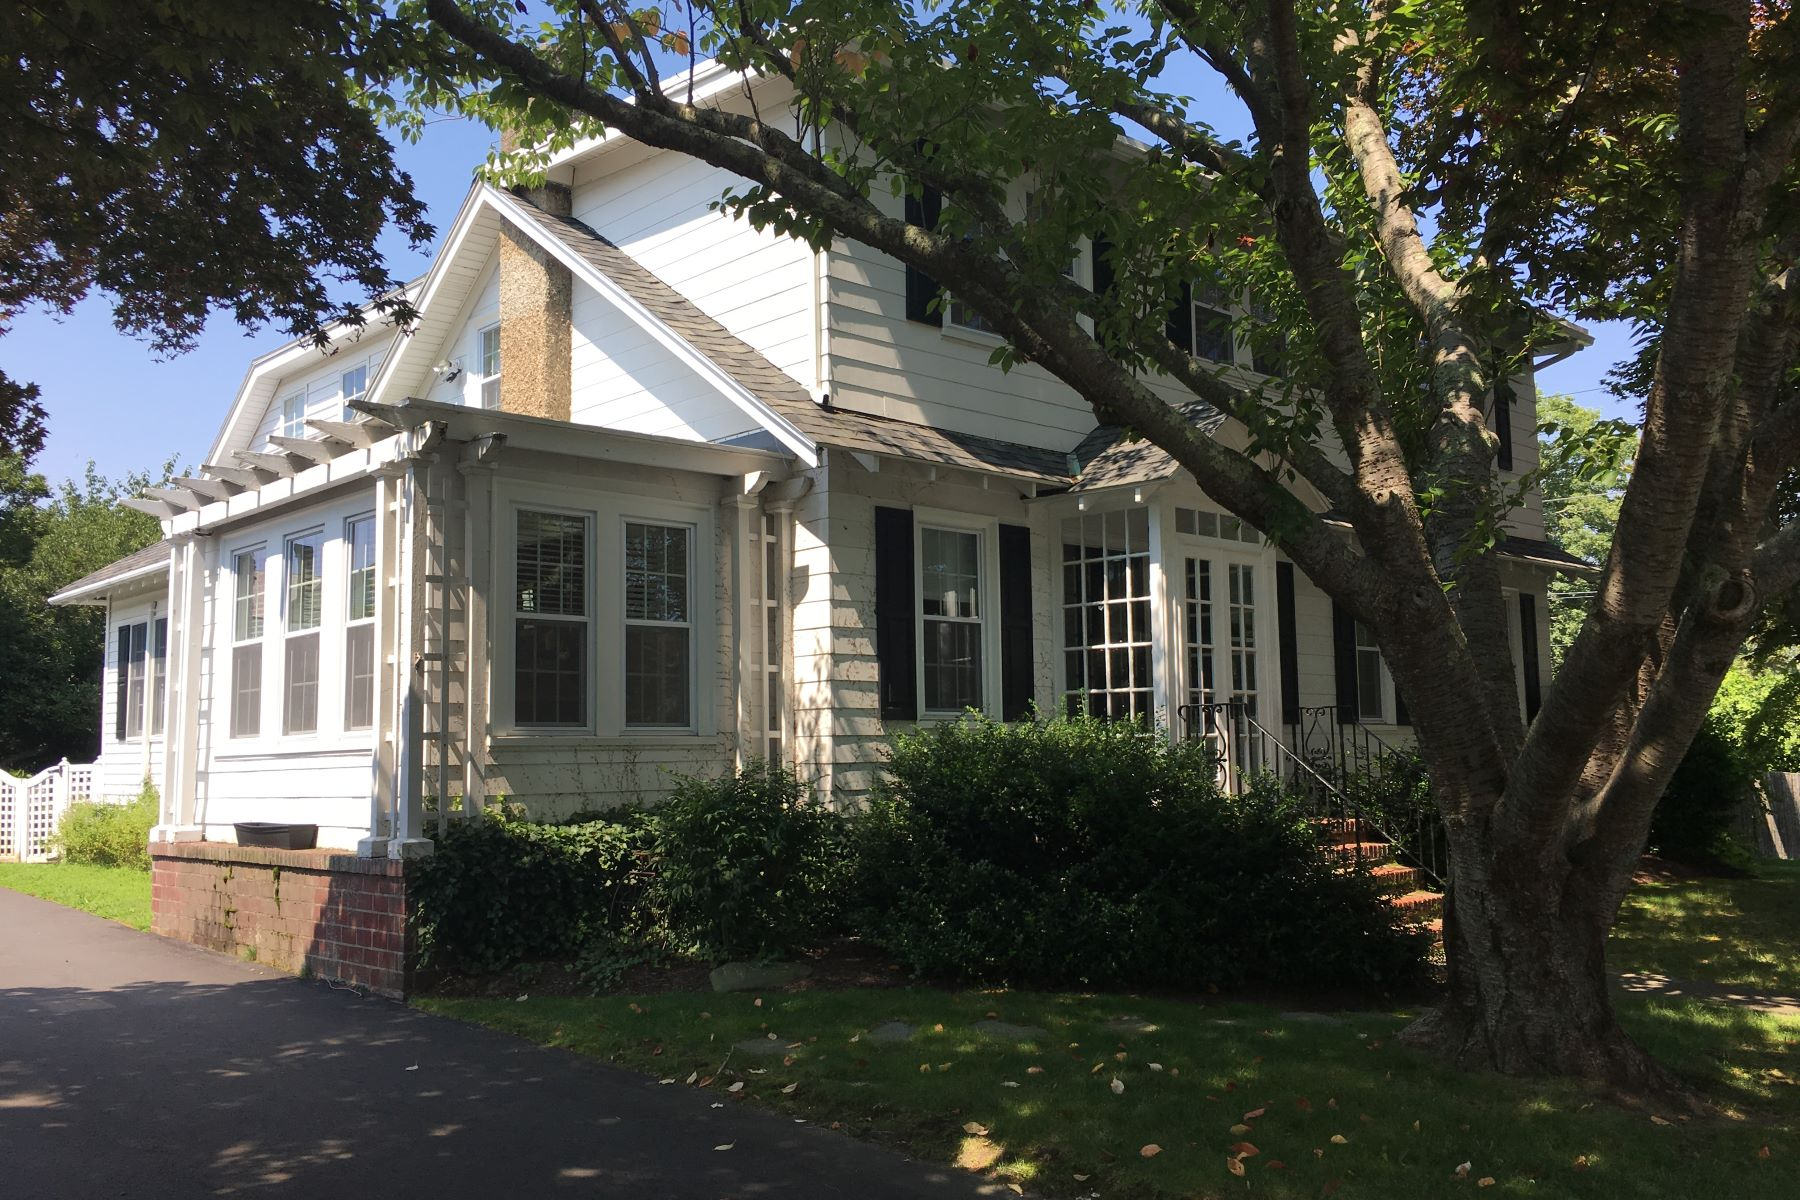 Single Family Homes for Sale at Kay/Catherine Colonial 110 Kay Street Newport, Rhode Island 02840 United States